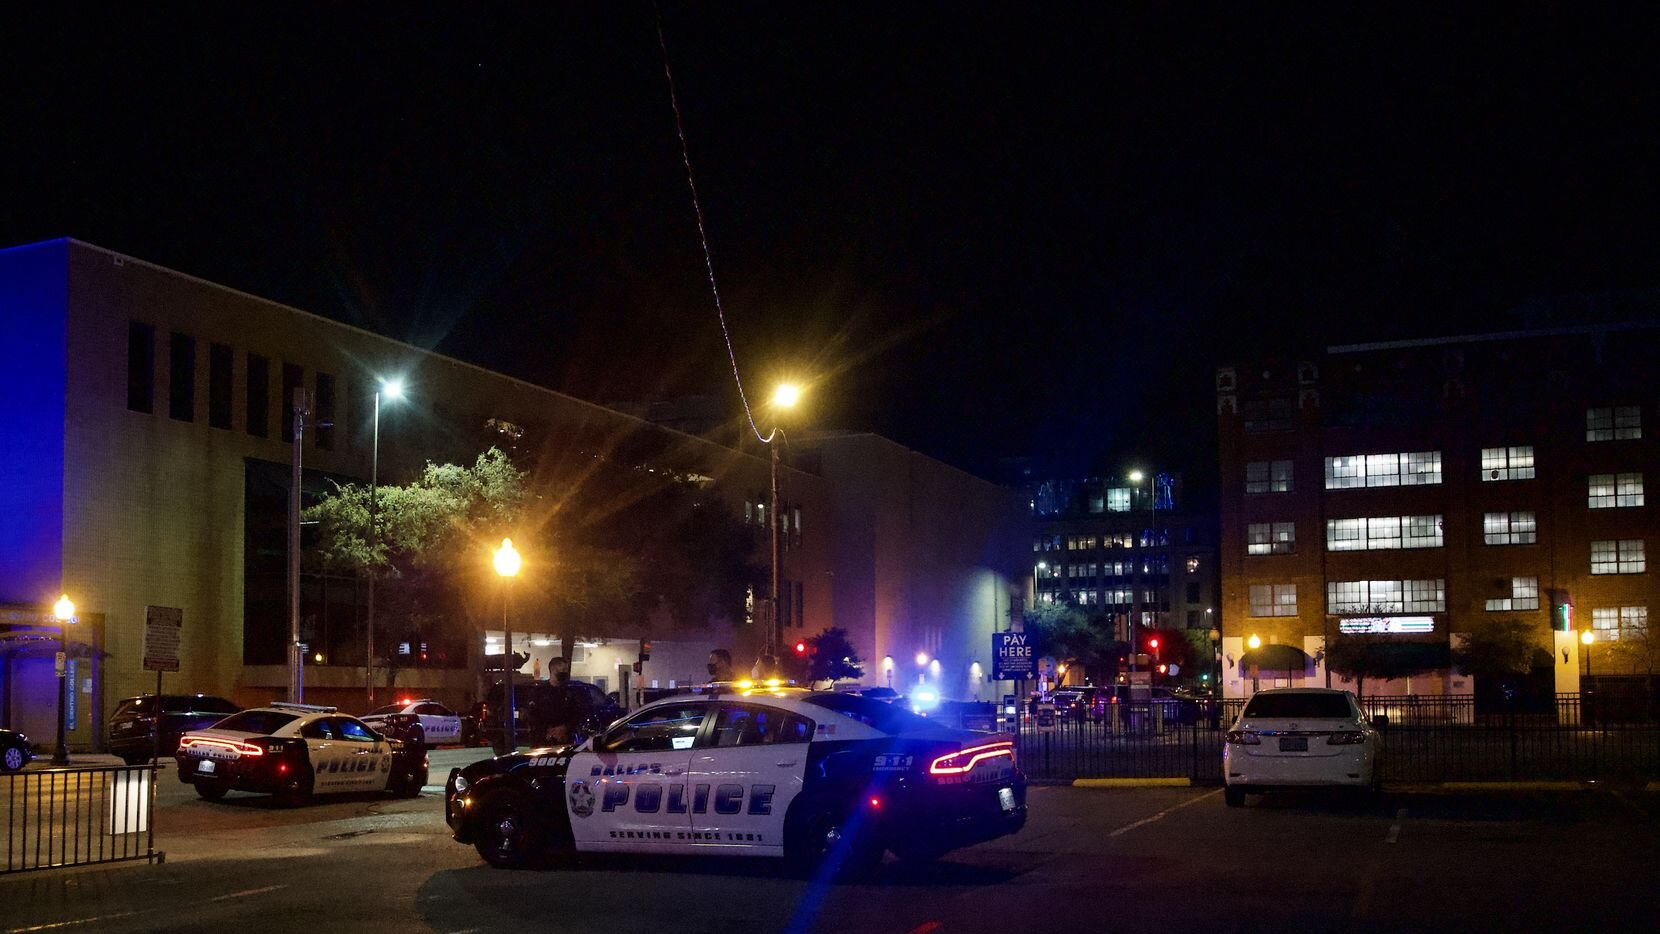 Police secure the area near the West End District in Dallas where a suspect engaged in gunfire with an El Centro officer Nov. 5.(Lynda M. Gonzalez / Staff Photographer Dallas Morning News)